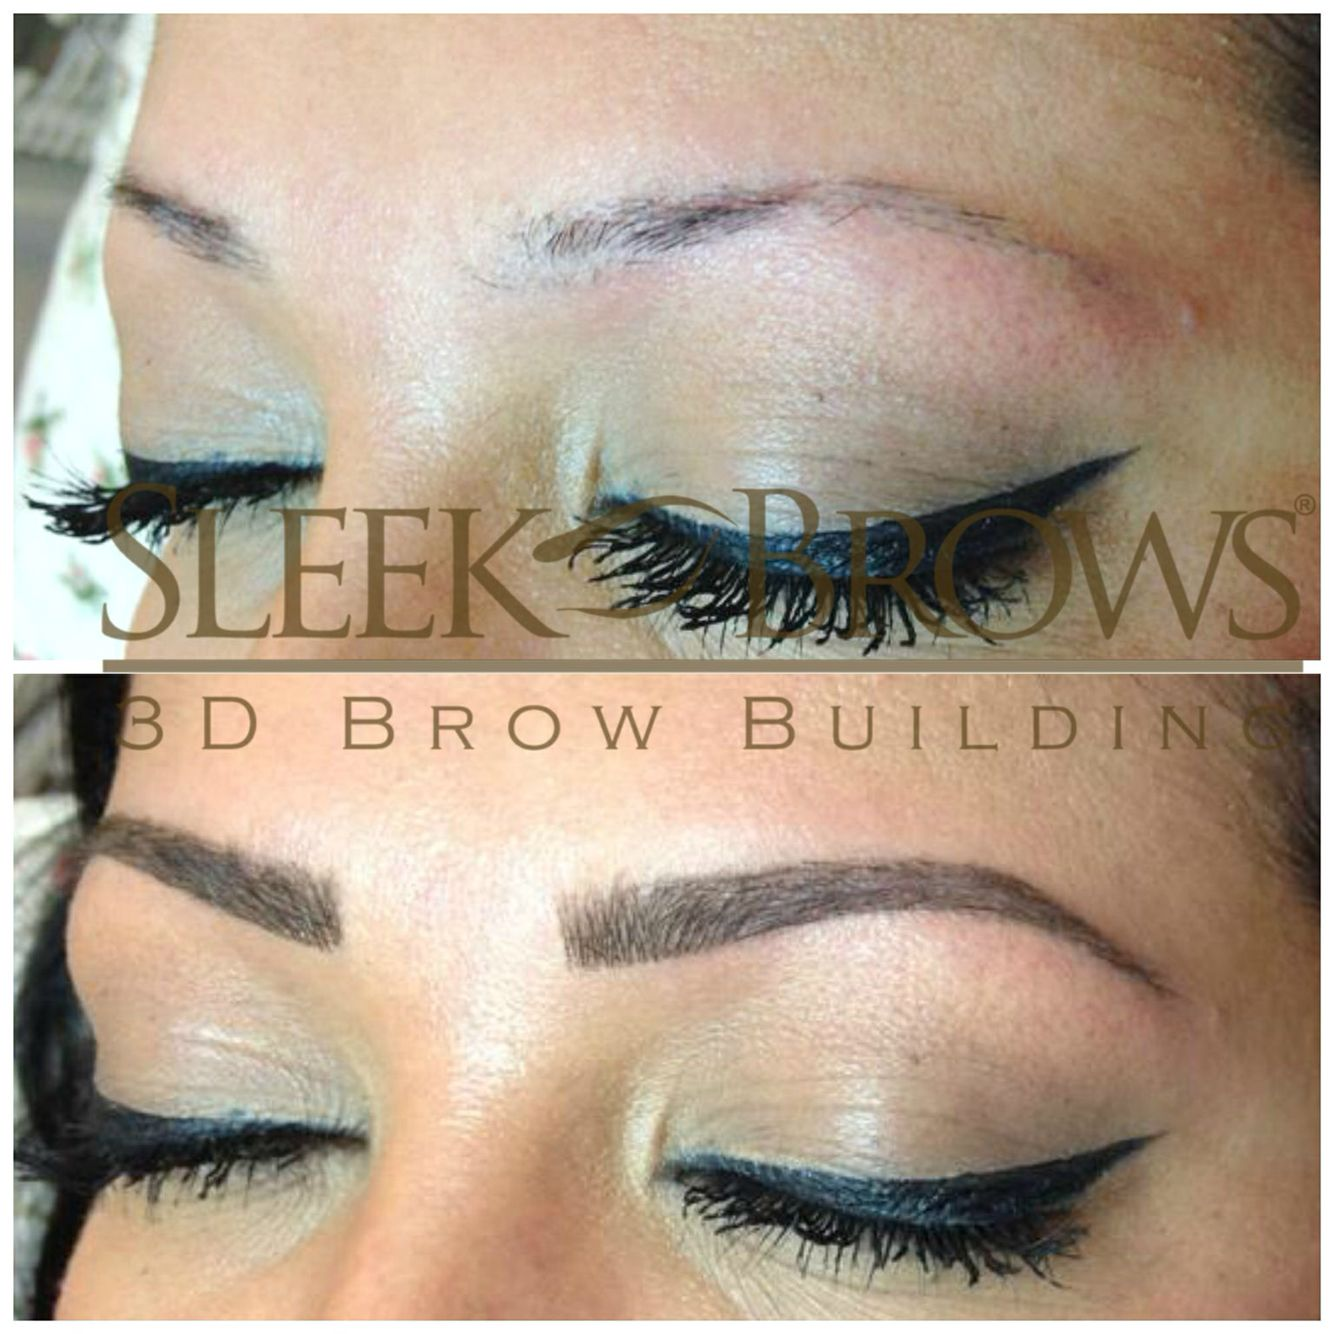 . This technique is non-invasive, smudge proof, waterproof and AMAZING!!  Learn Threading, Brow Extensions and 3D Brow Sculpting using a textured paint EXCLUSIVE only to Sleek Brows!! Contact me today!    #sleekbrows #cincinnati #brows #makeup #salon #lashes #browextensions #lashextensions